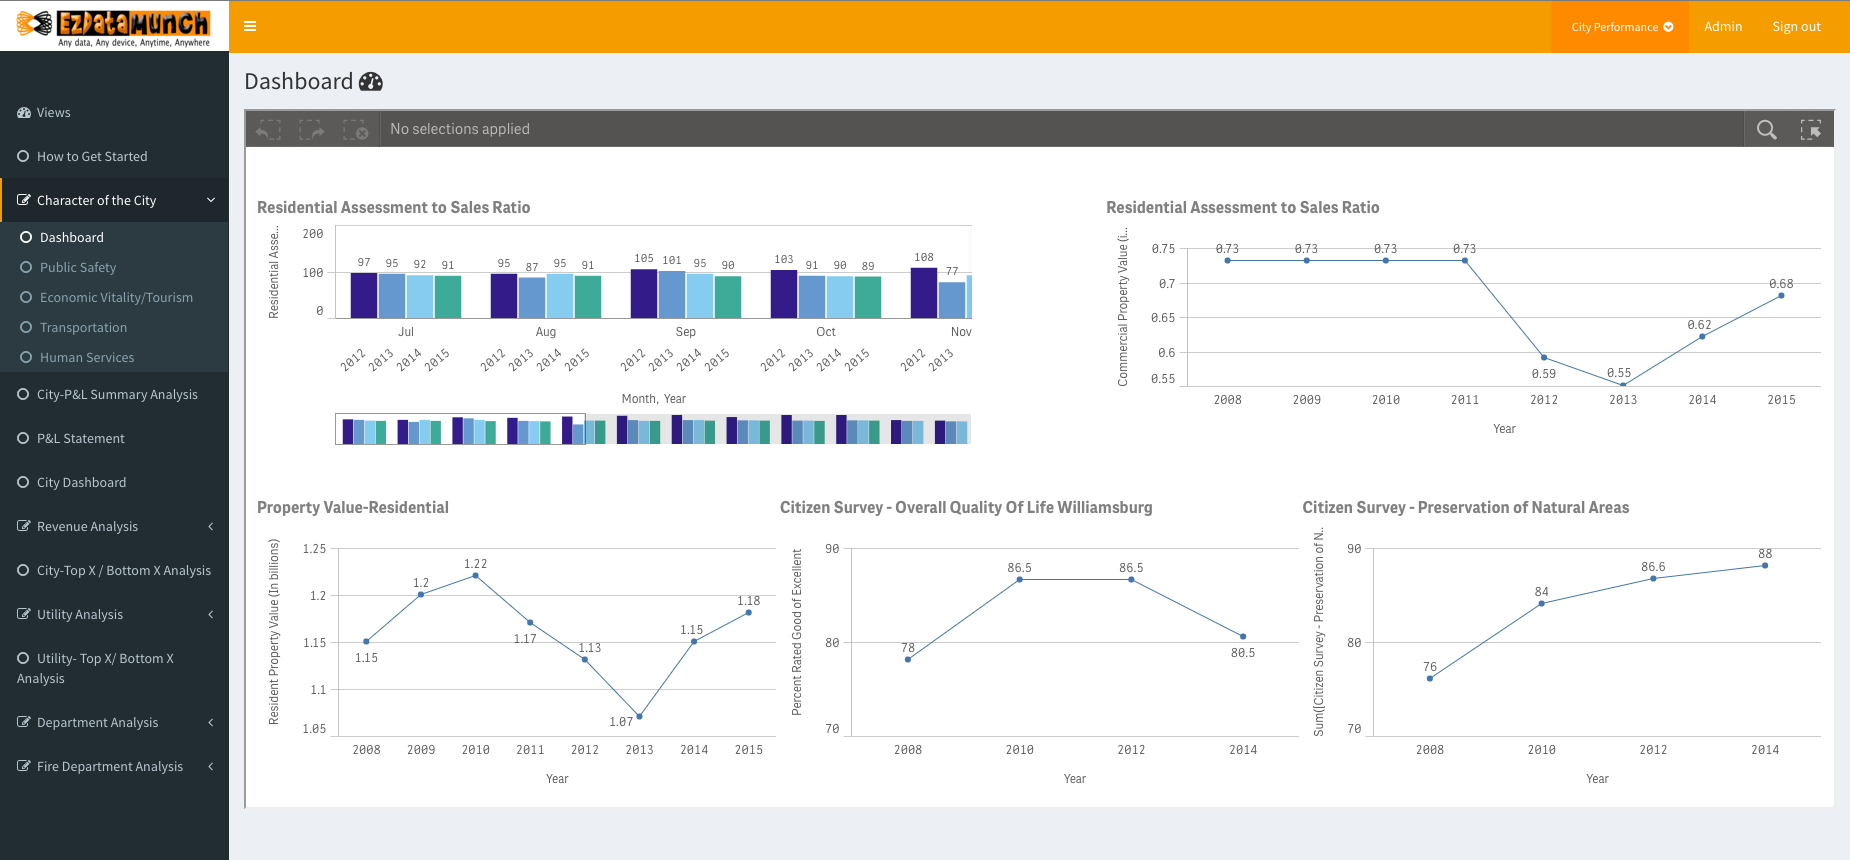 Public Sector Business Intelligence-Government Analytics-Public Sector Dashboard.